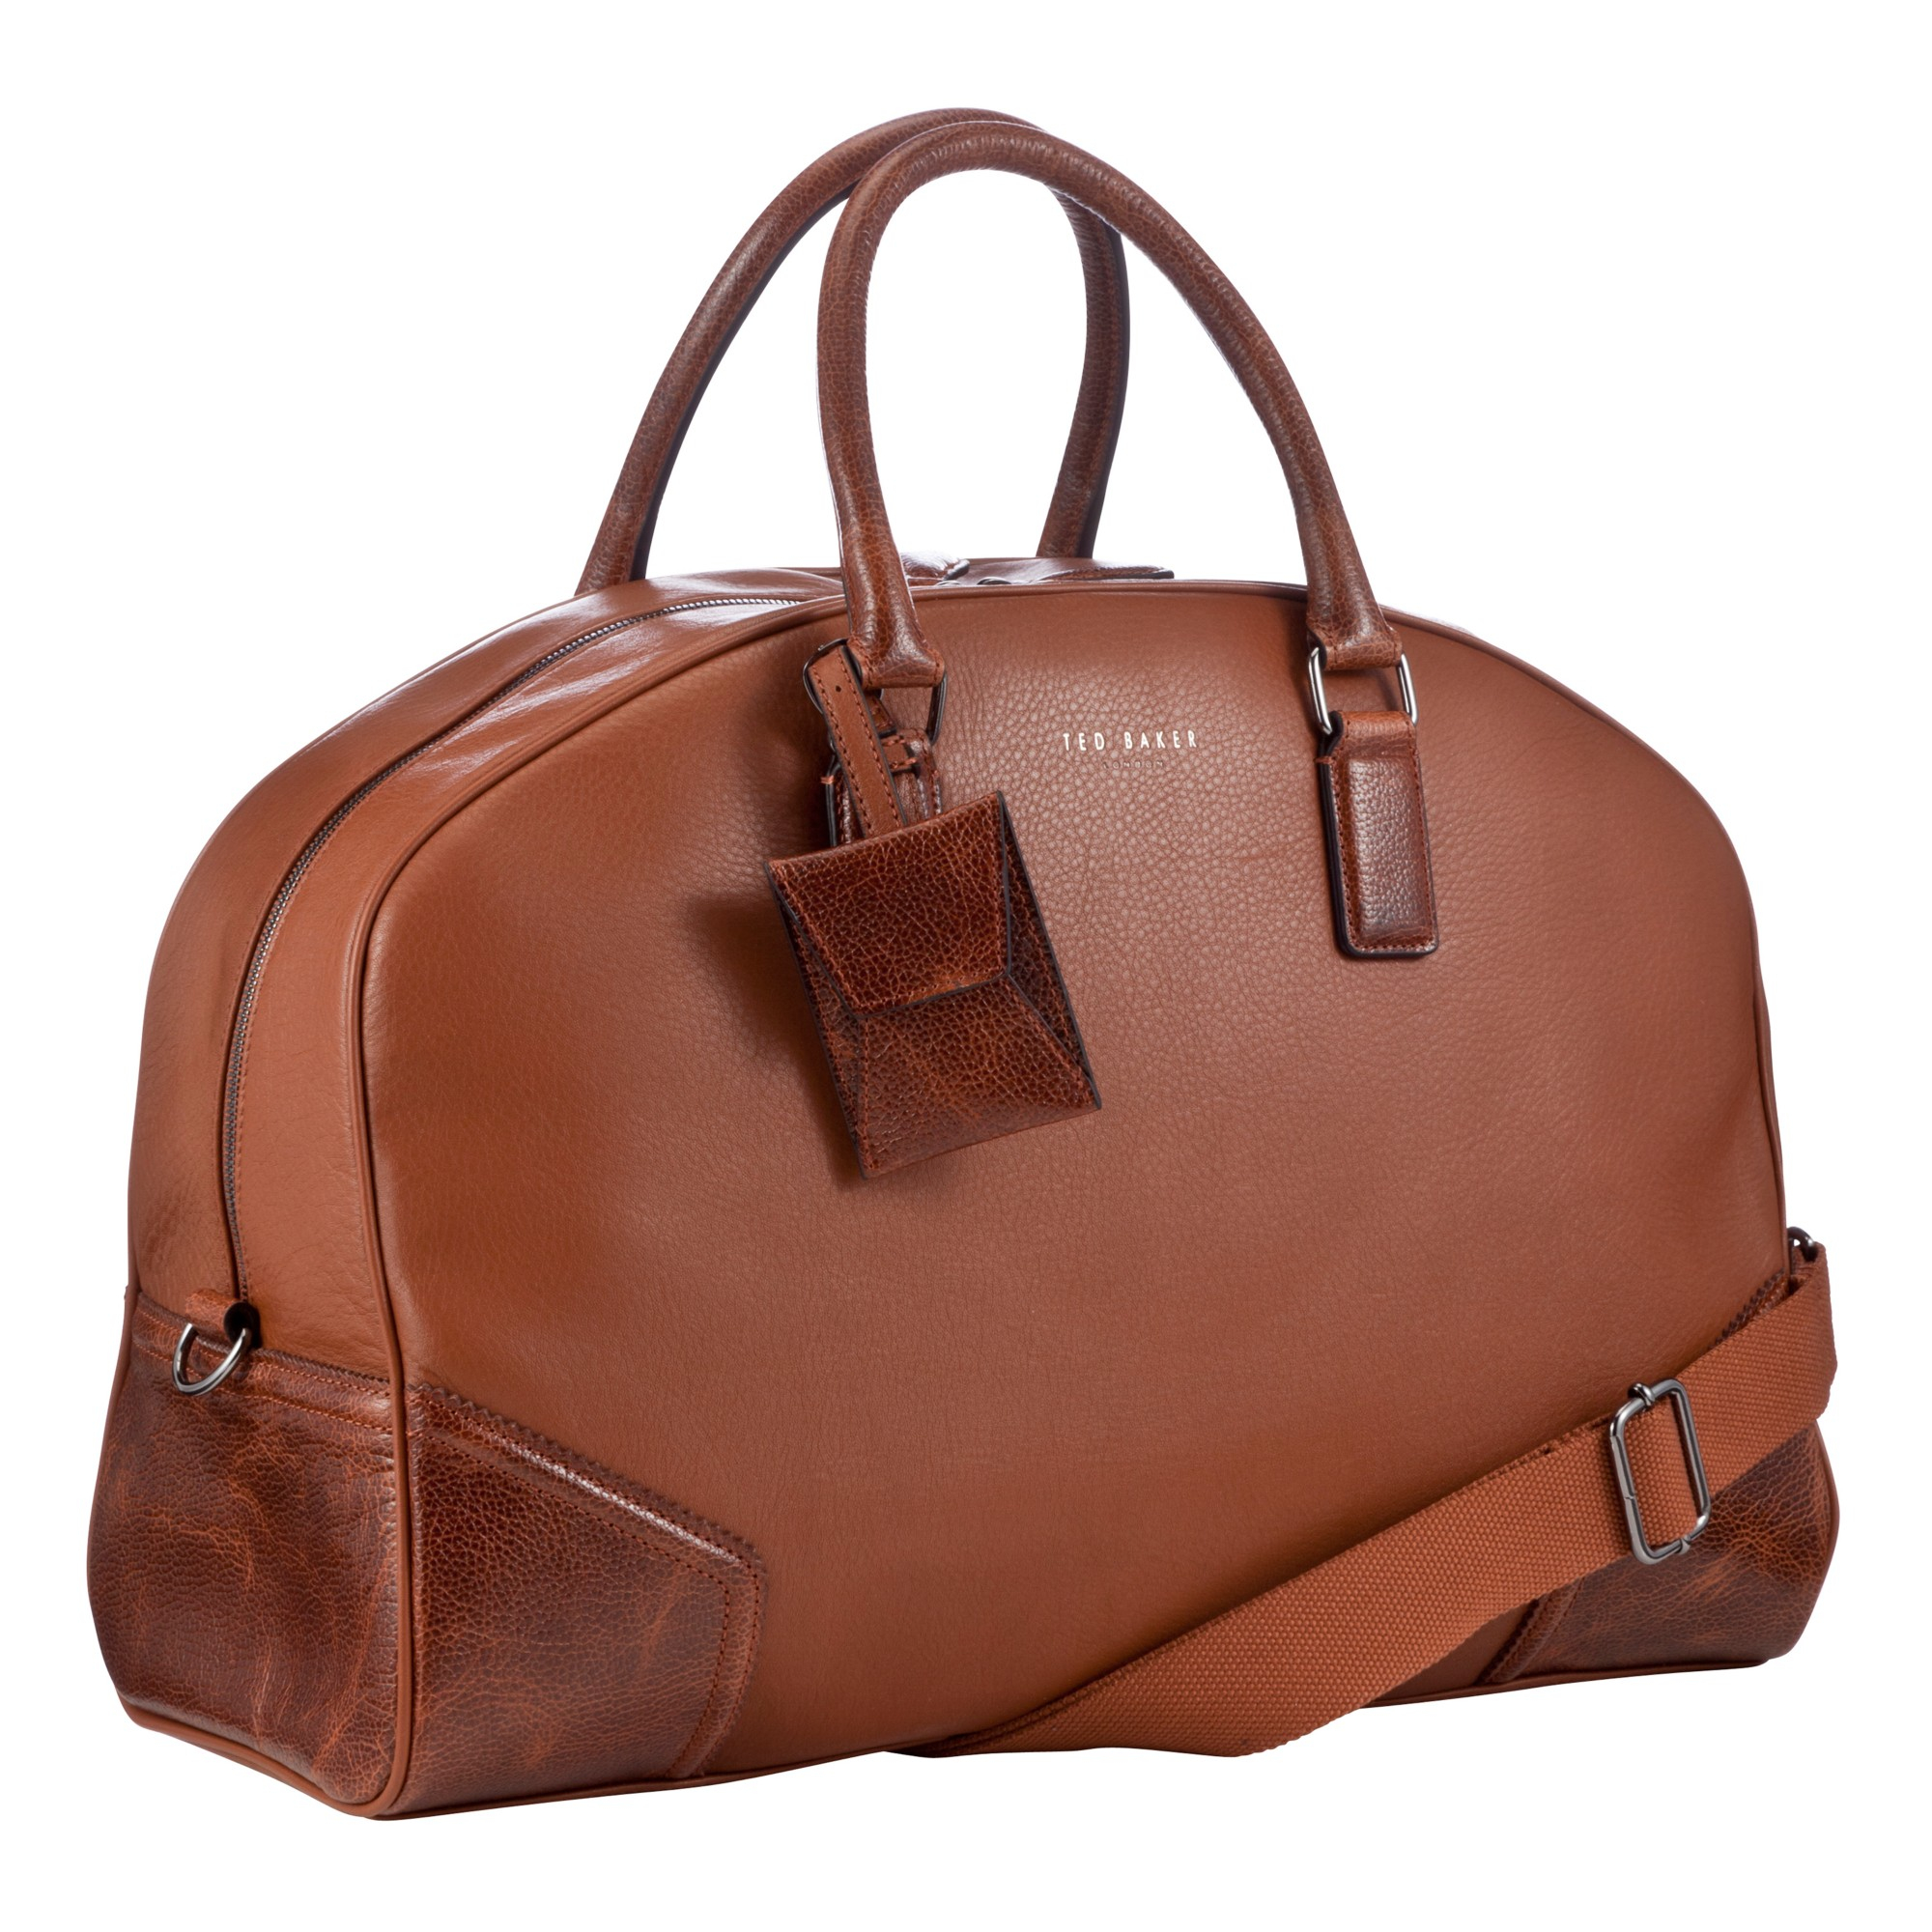 3a35ae1e236 Ted Baker Promsey Leather Holdall Bag in Brown - Lyst